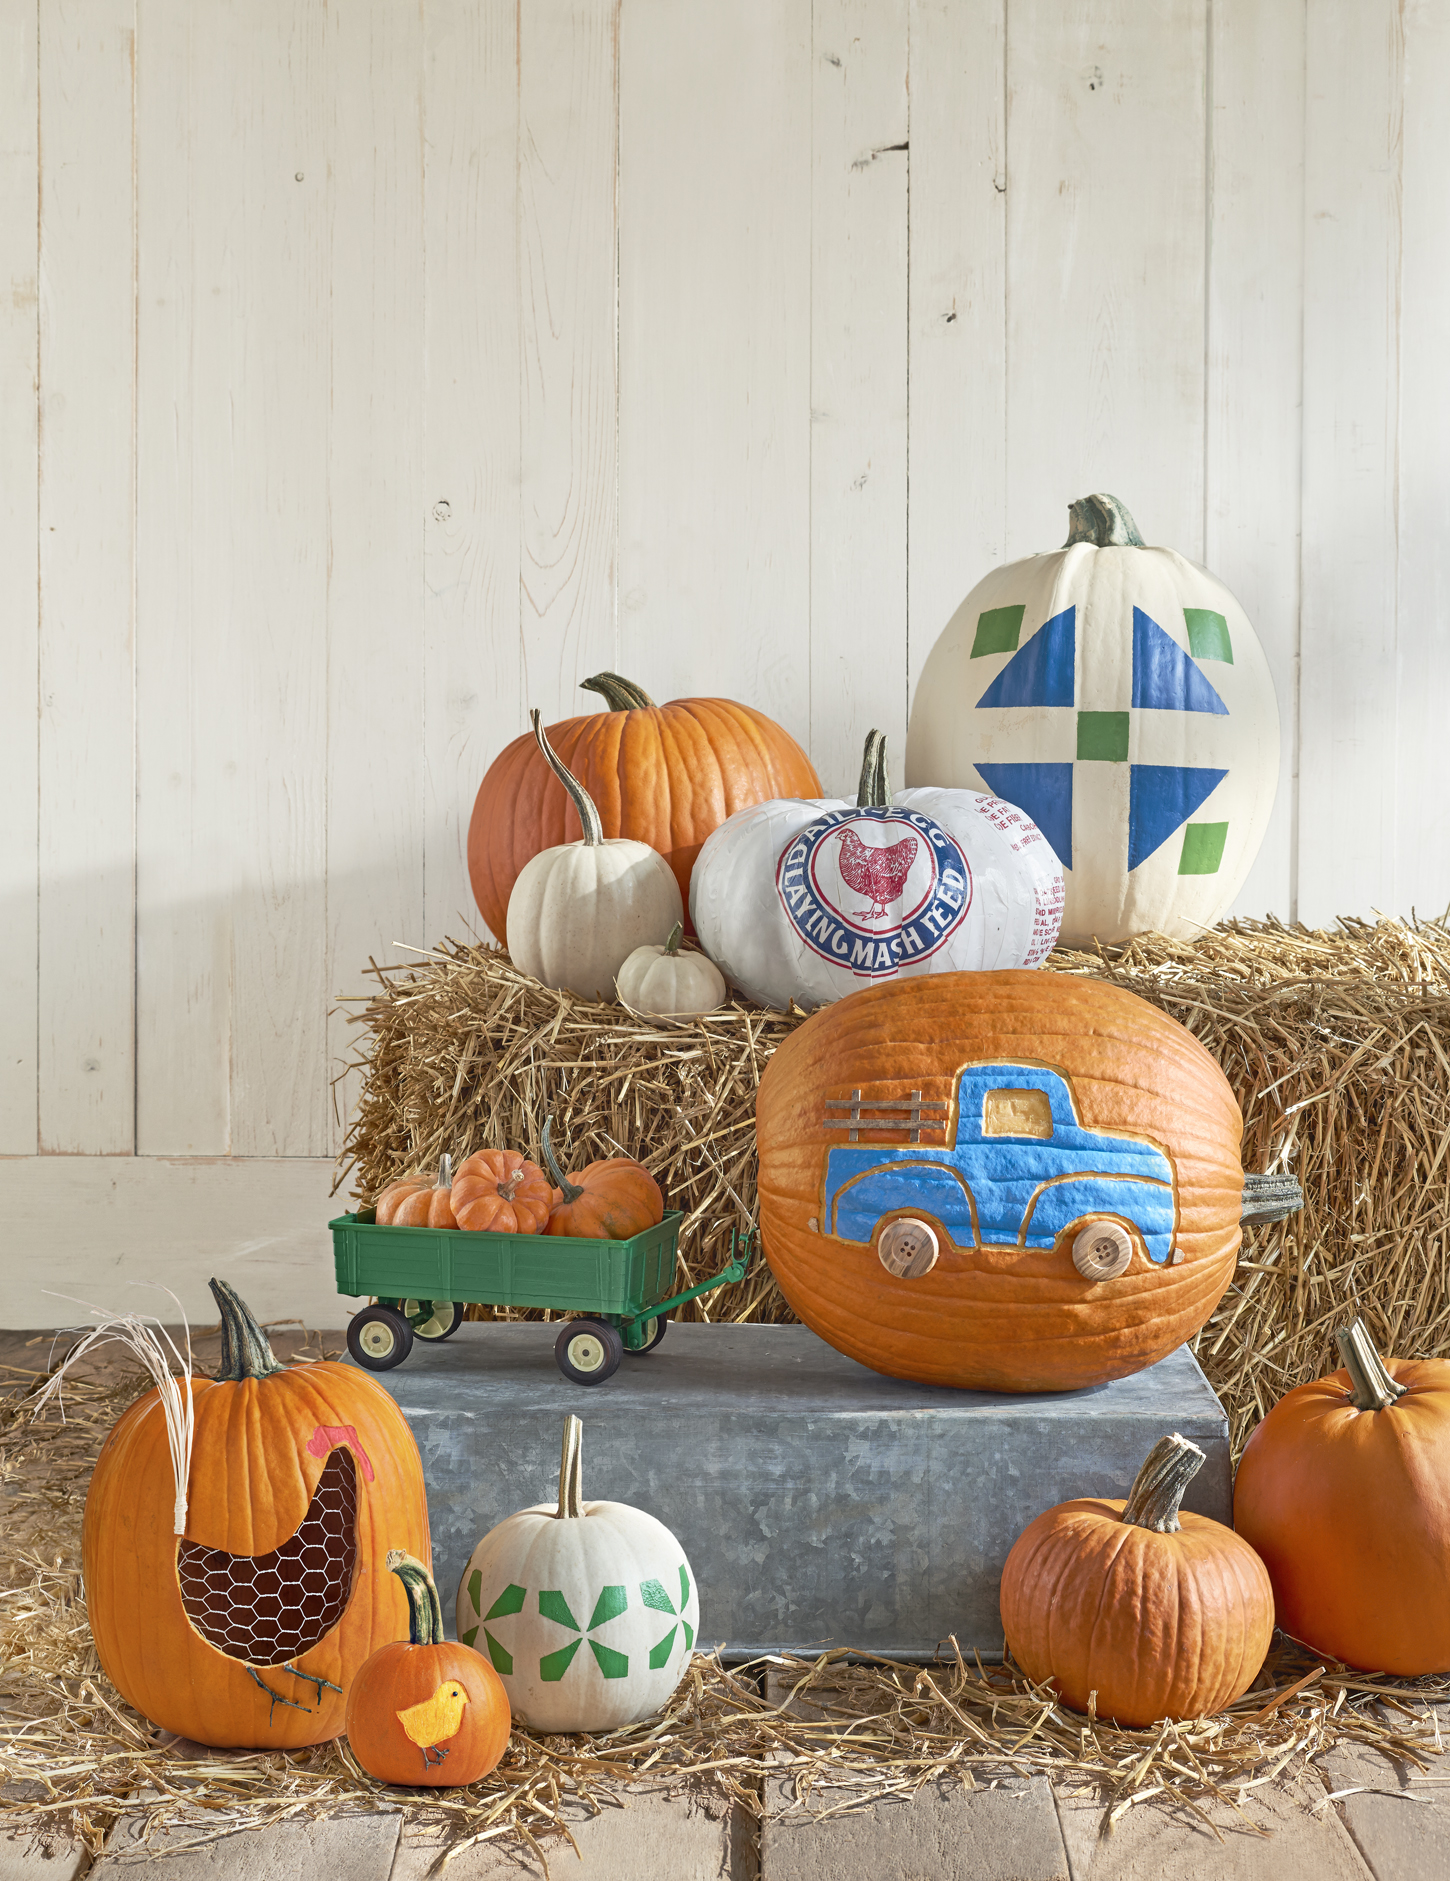 88 cool pumpkin decorating ideas easy halloween pumpkin decorations and crafts 2017 - Pumpkins Decorations